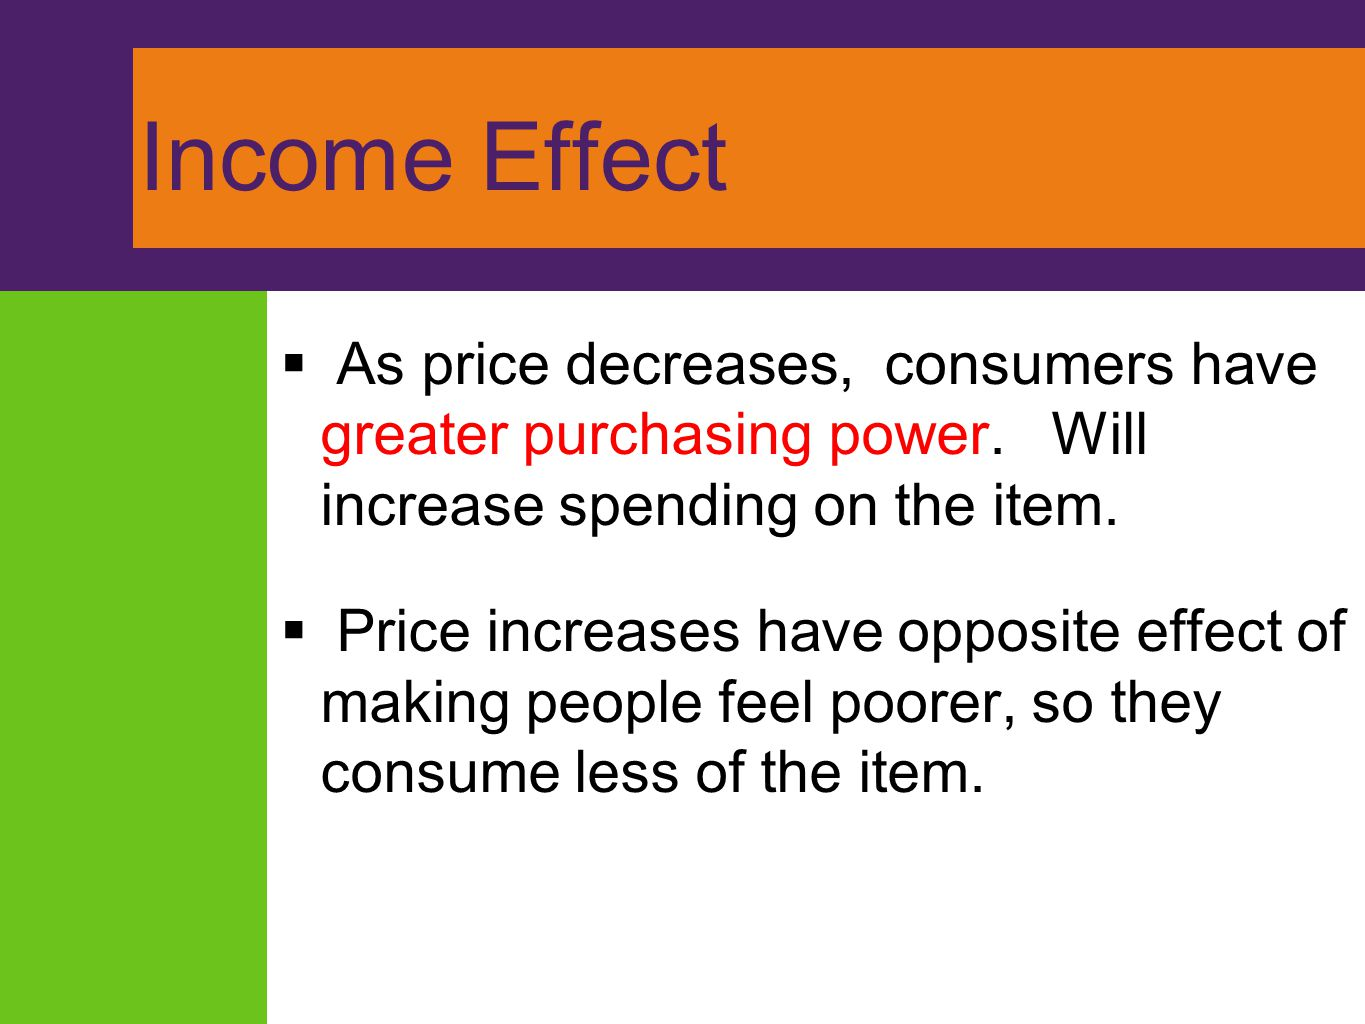 Income Effect As price decreases, consumers have greater purchasing power. Will increase spending on the item.